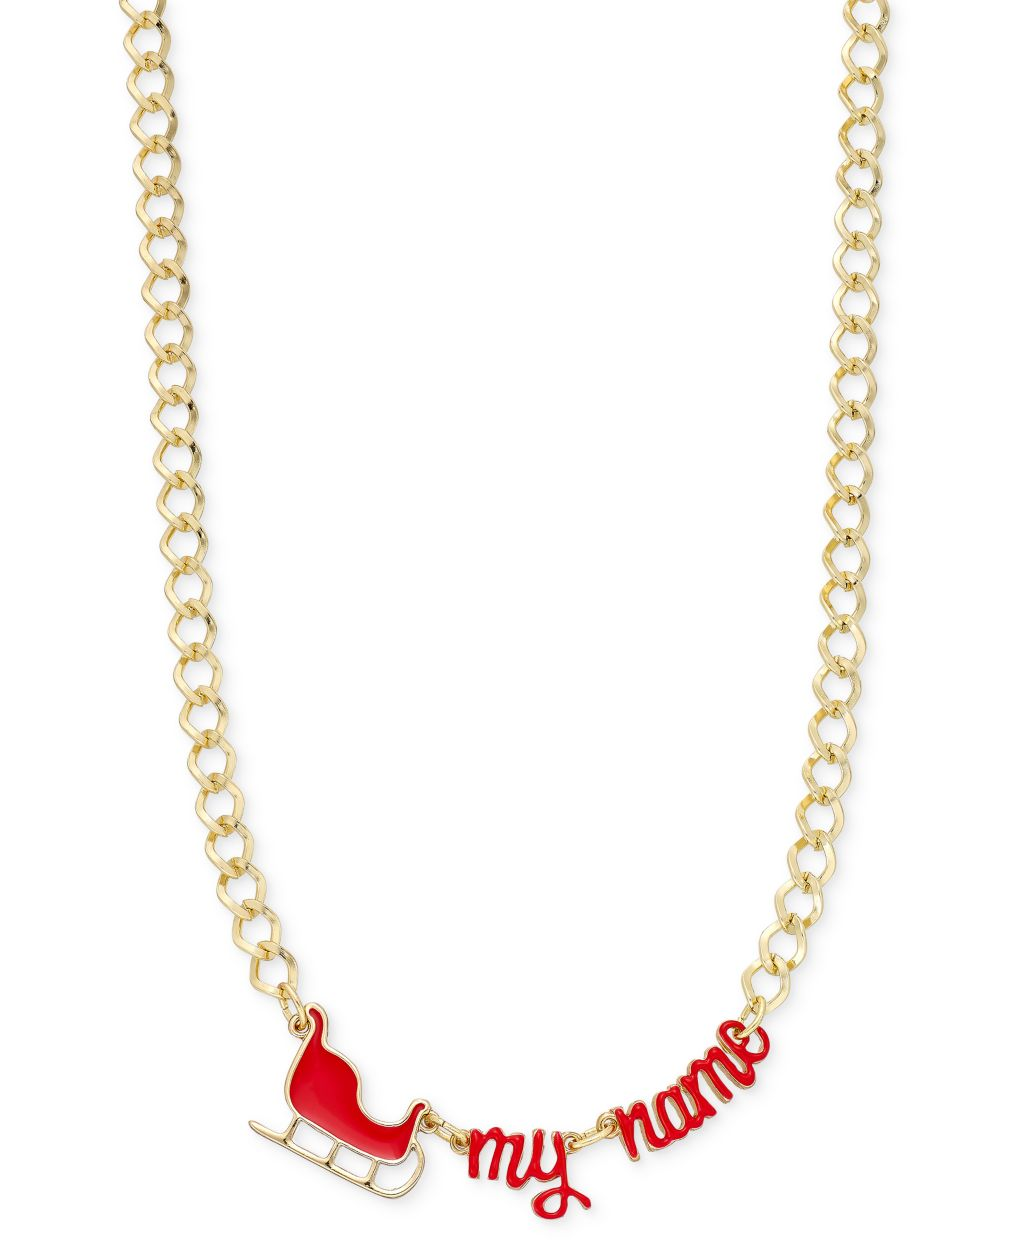 Celebrate Shop Sleigh My Name Necklace